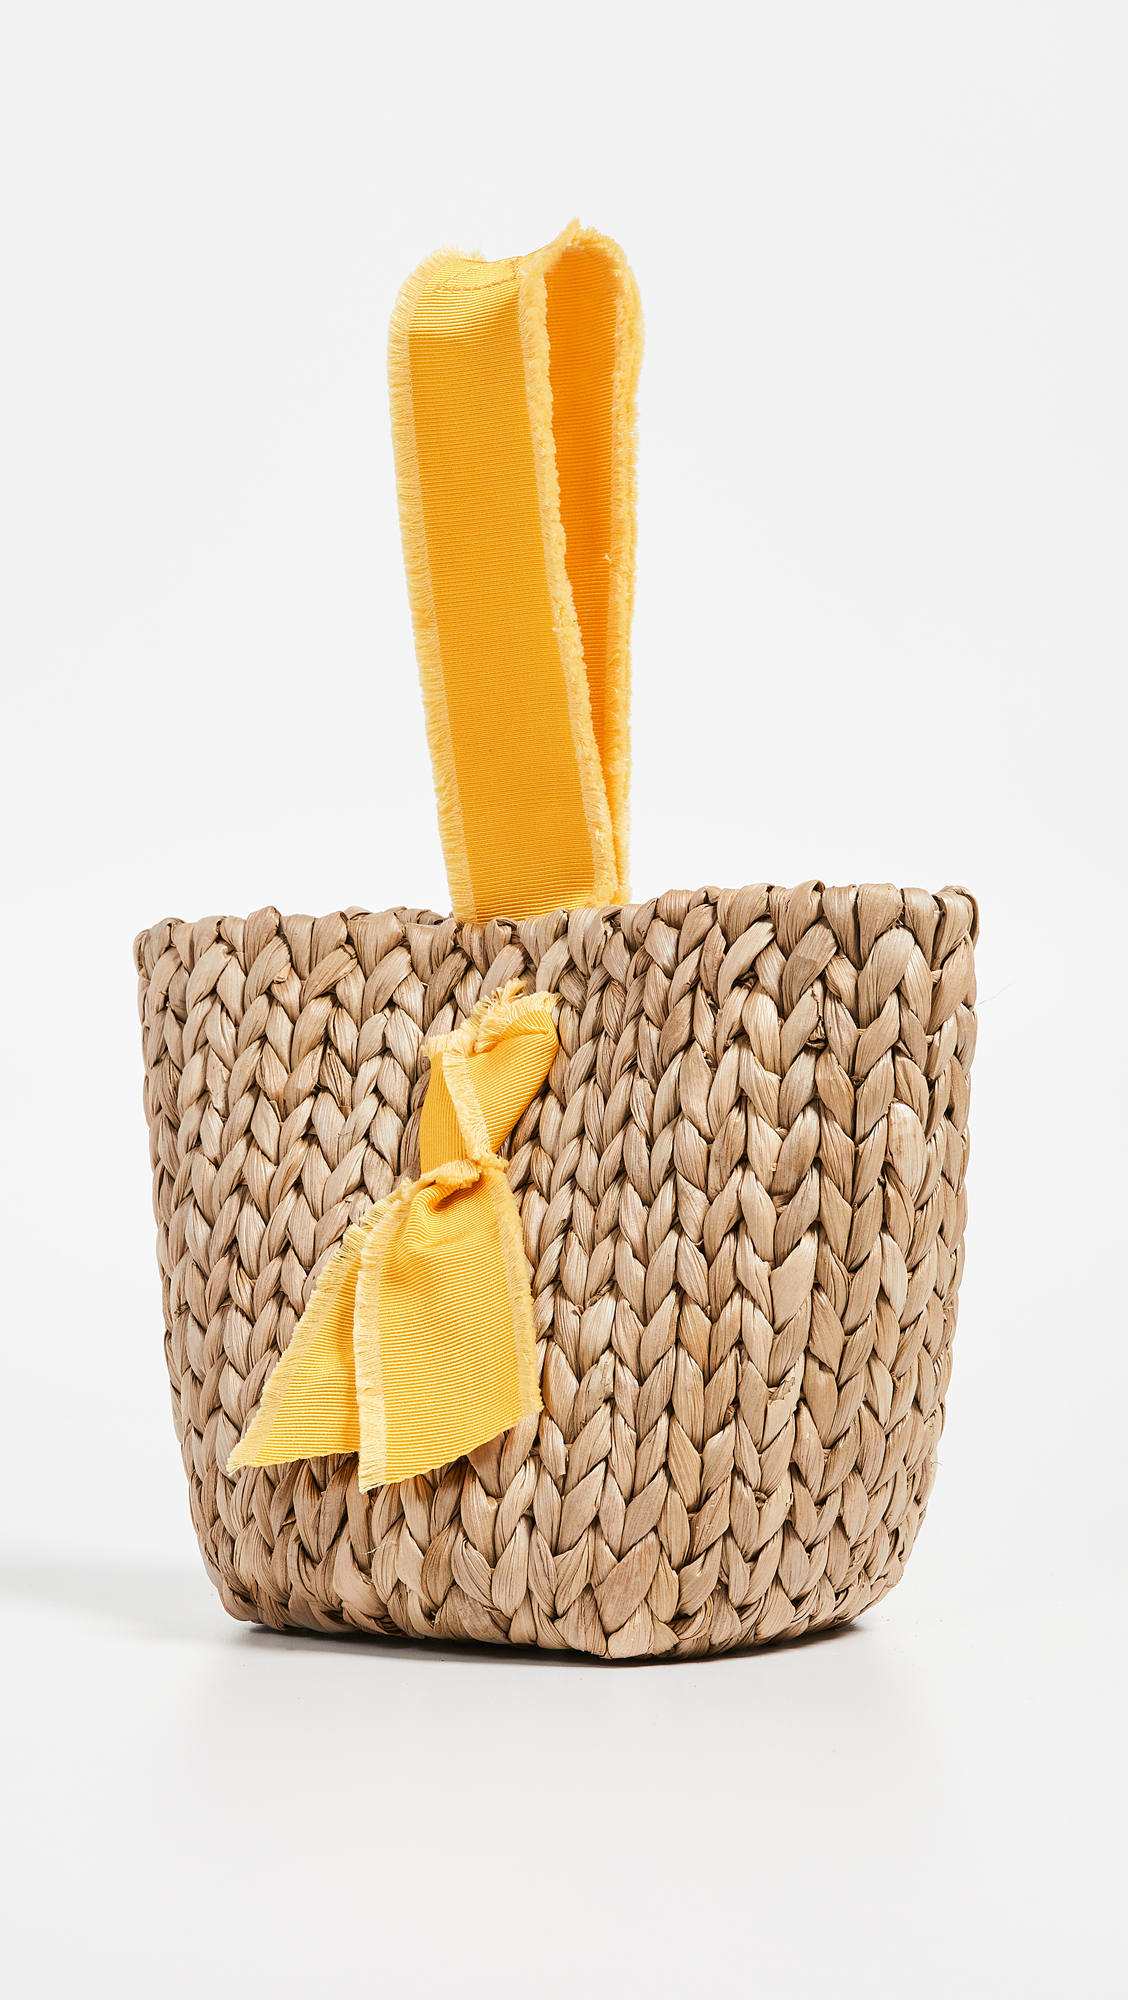 A basket bag - I love the bright pop of yellow on this petite, straw bag—the perfect size to store all your summer essentials from day to night!